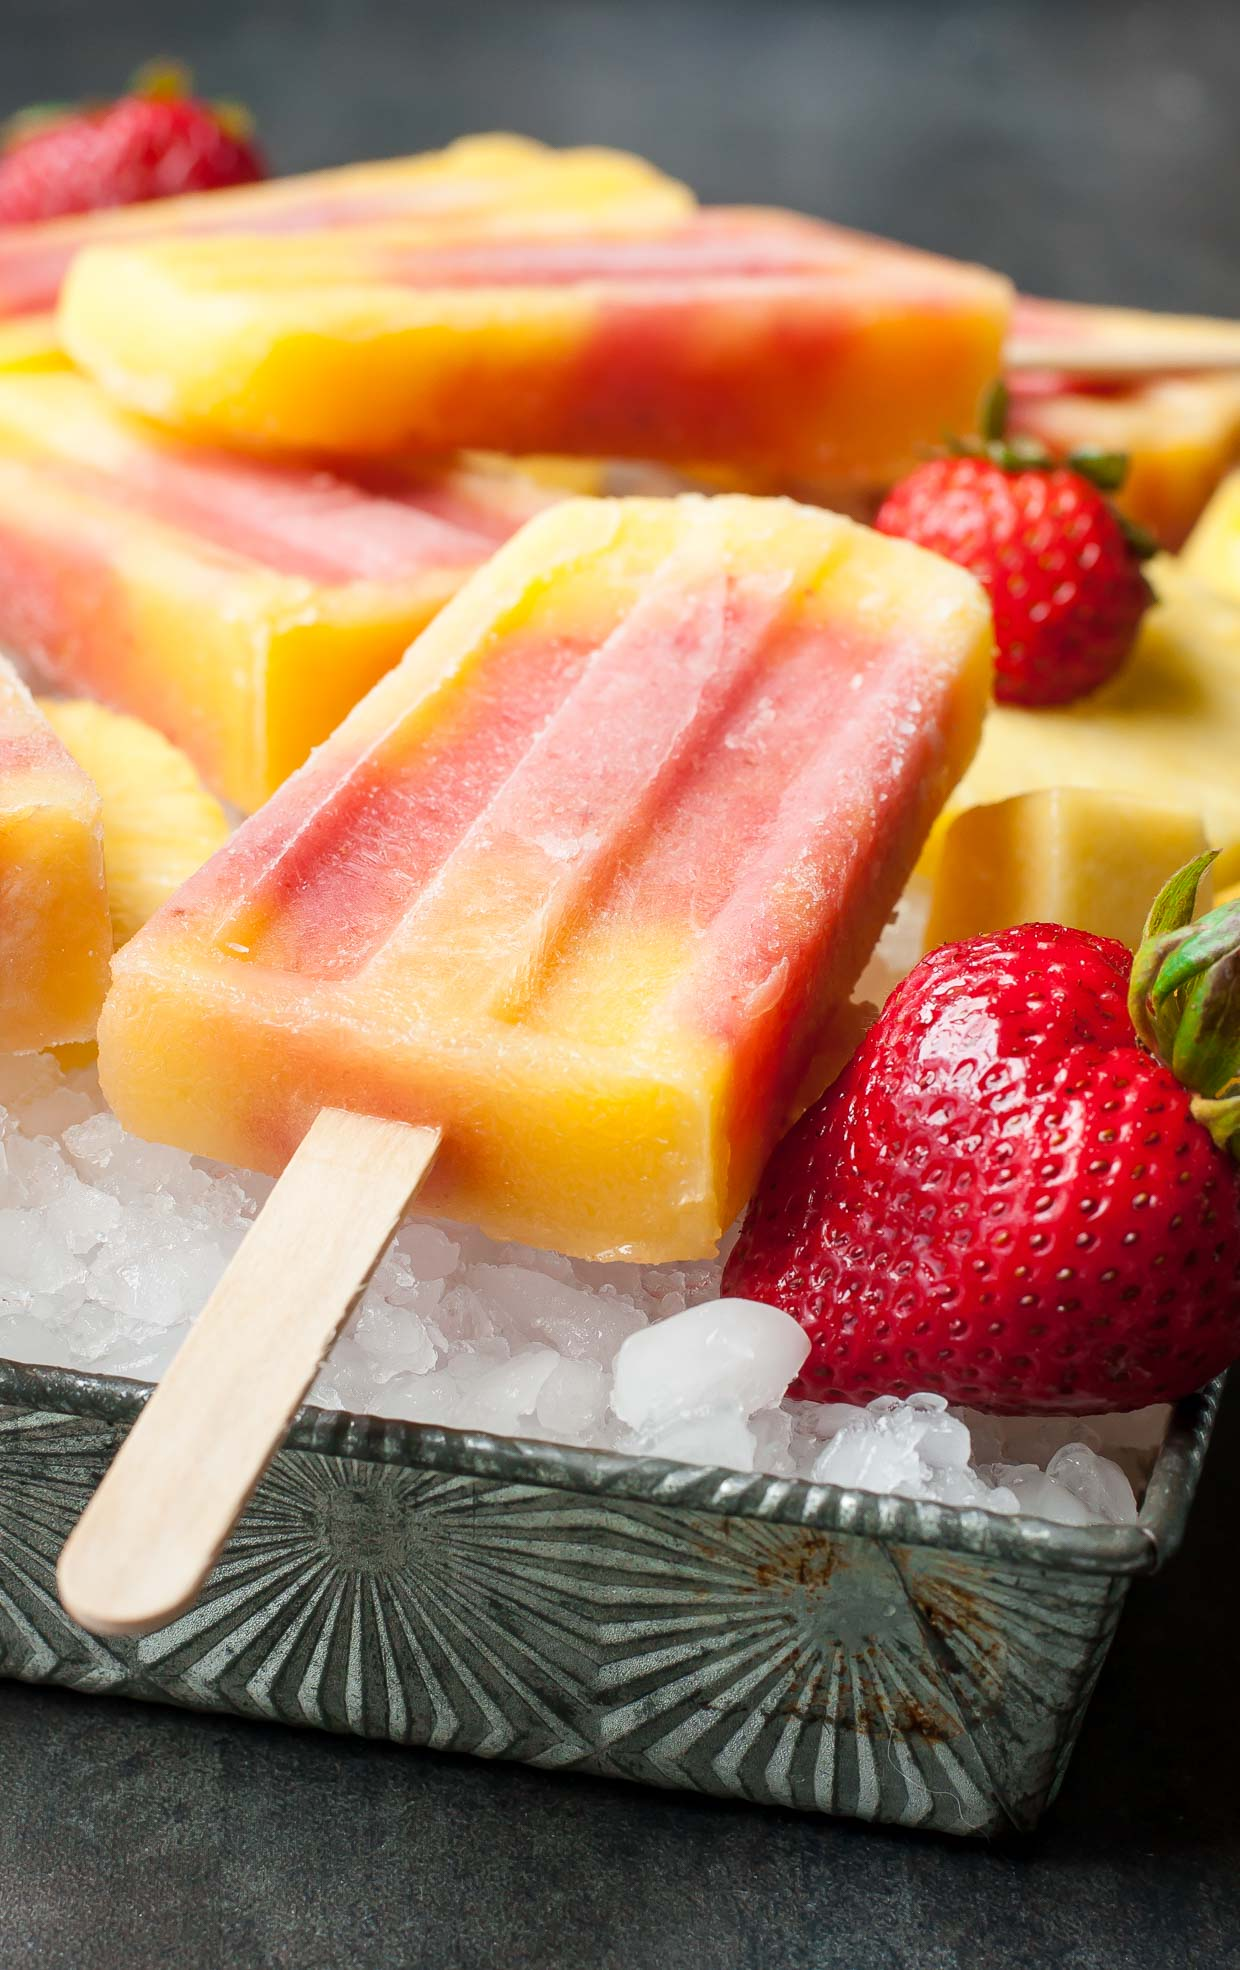 Tropical Fruit Pops with Strawberries and Pineapple